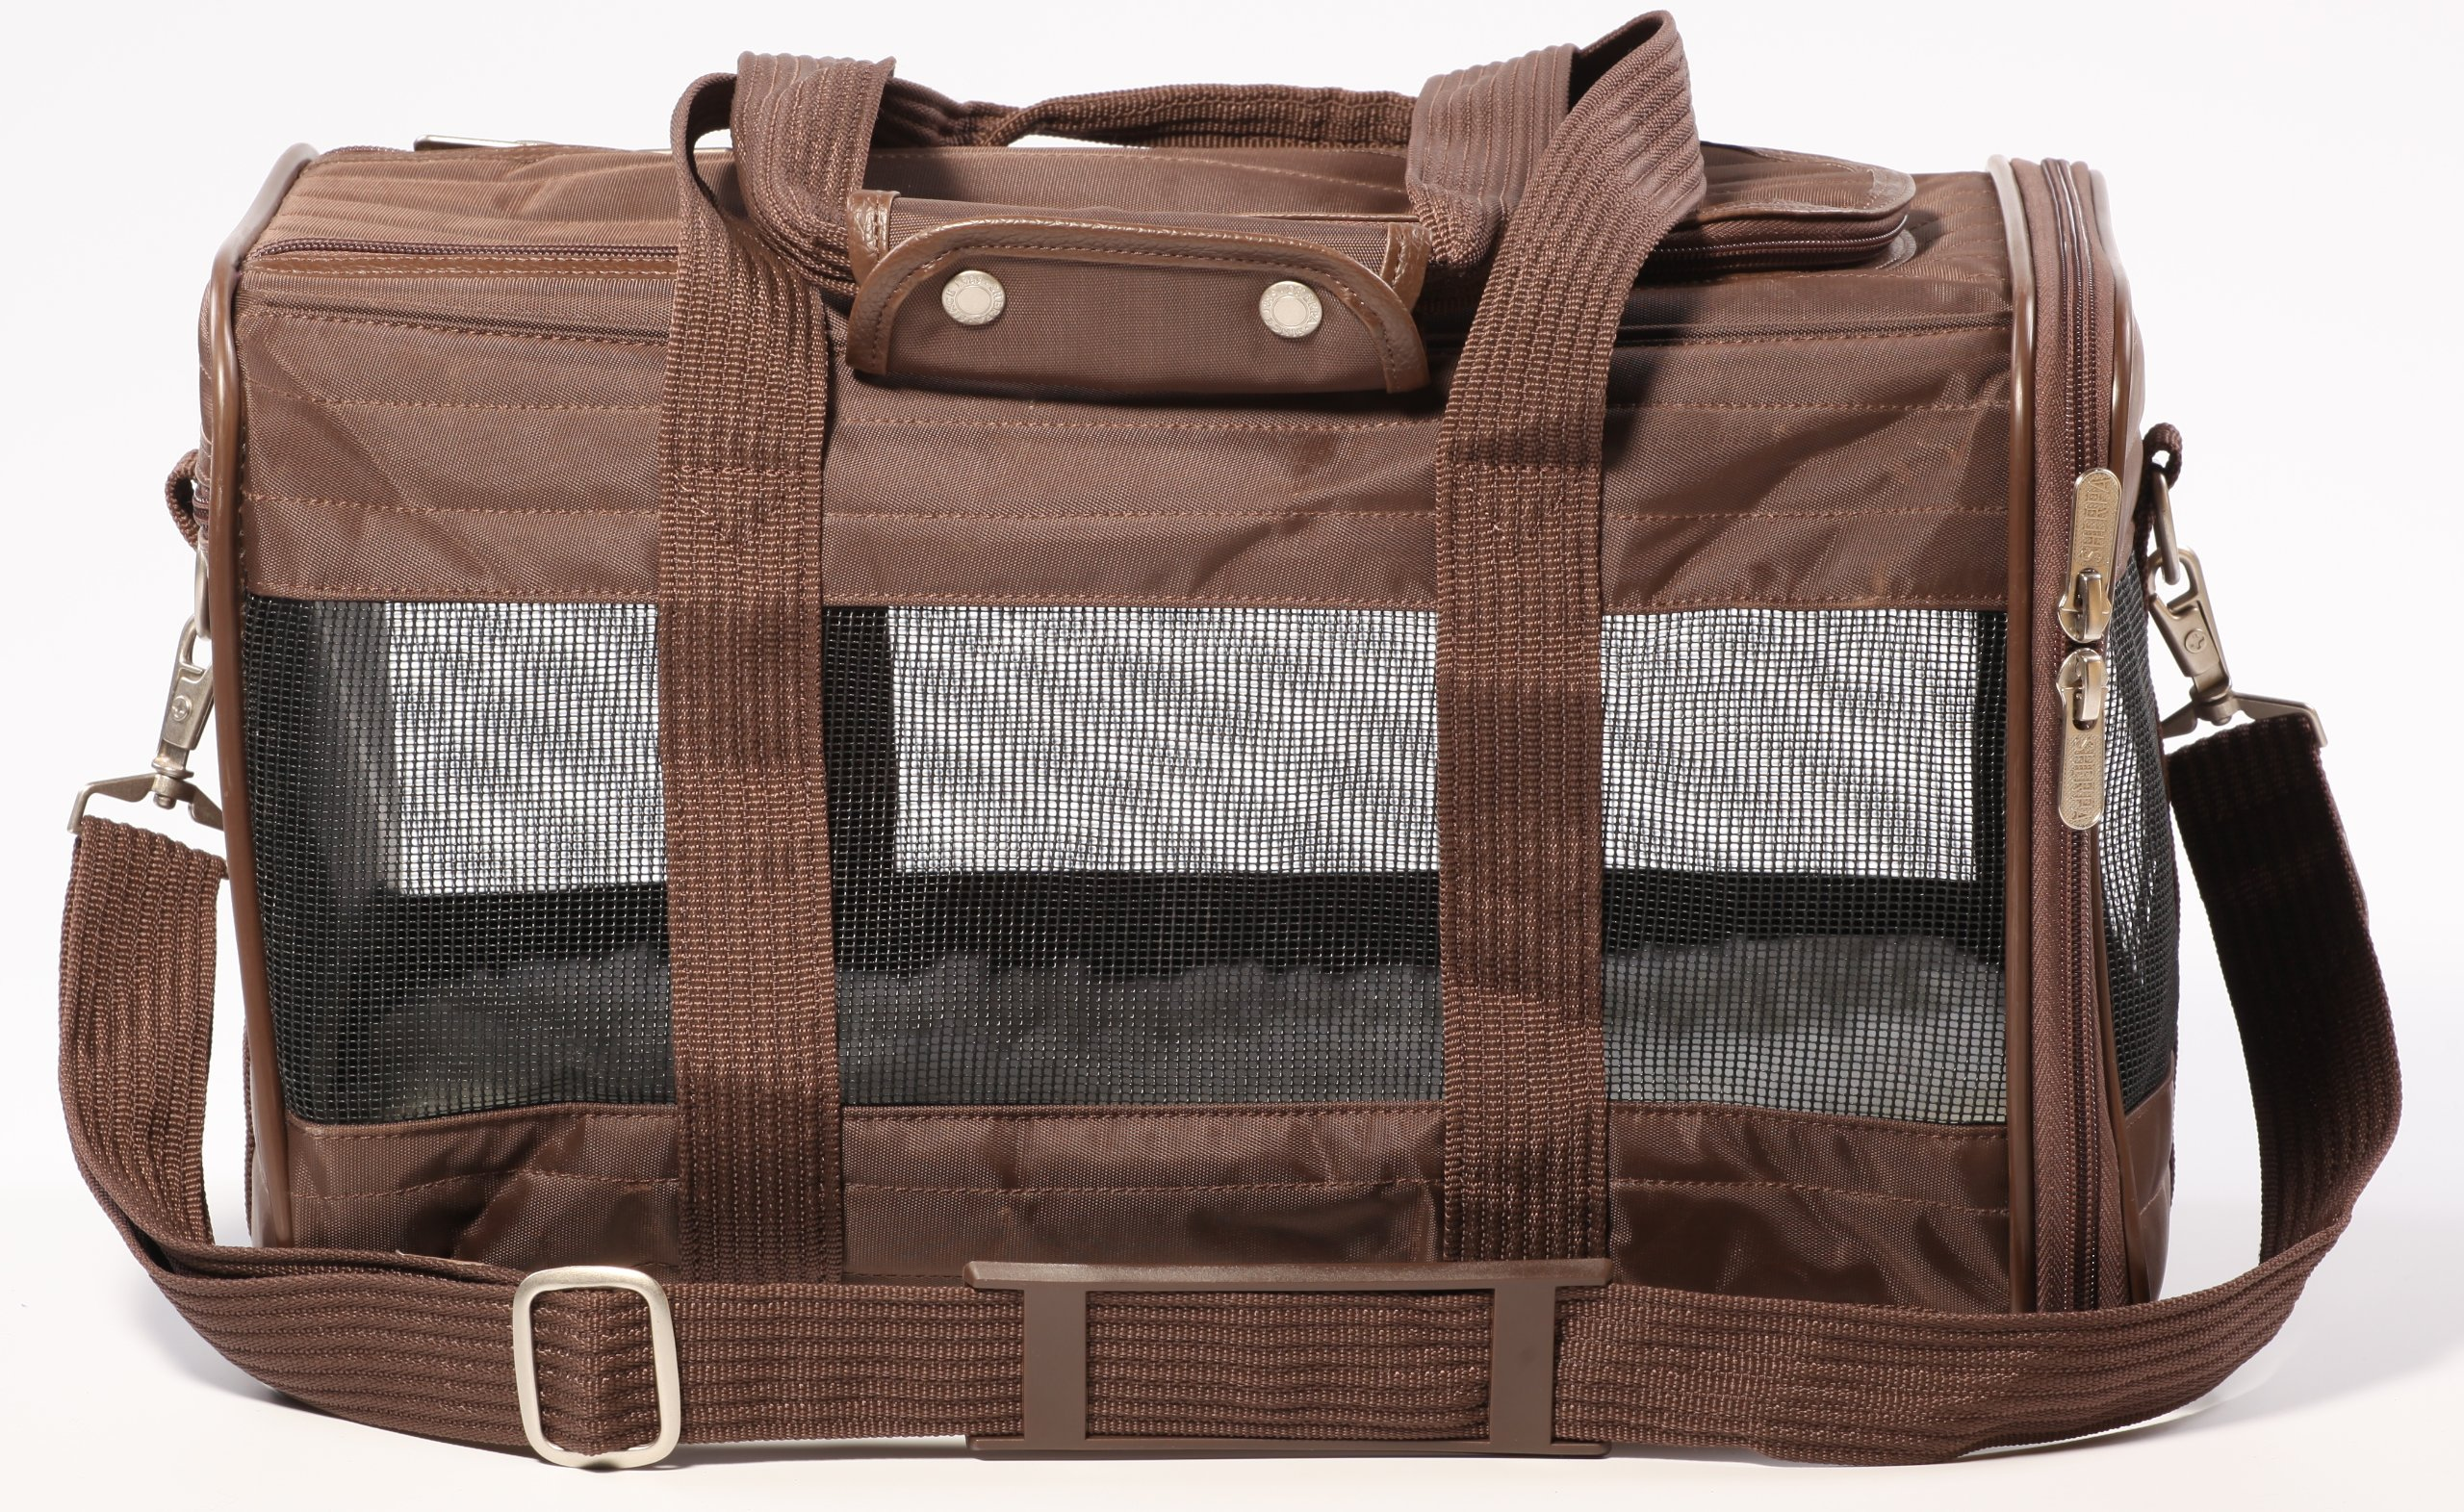 Sherpa Travel Original Deluxe Airline Approved Pet Carrier Small, Brown by Sherpa (Image #2)